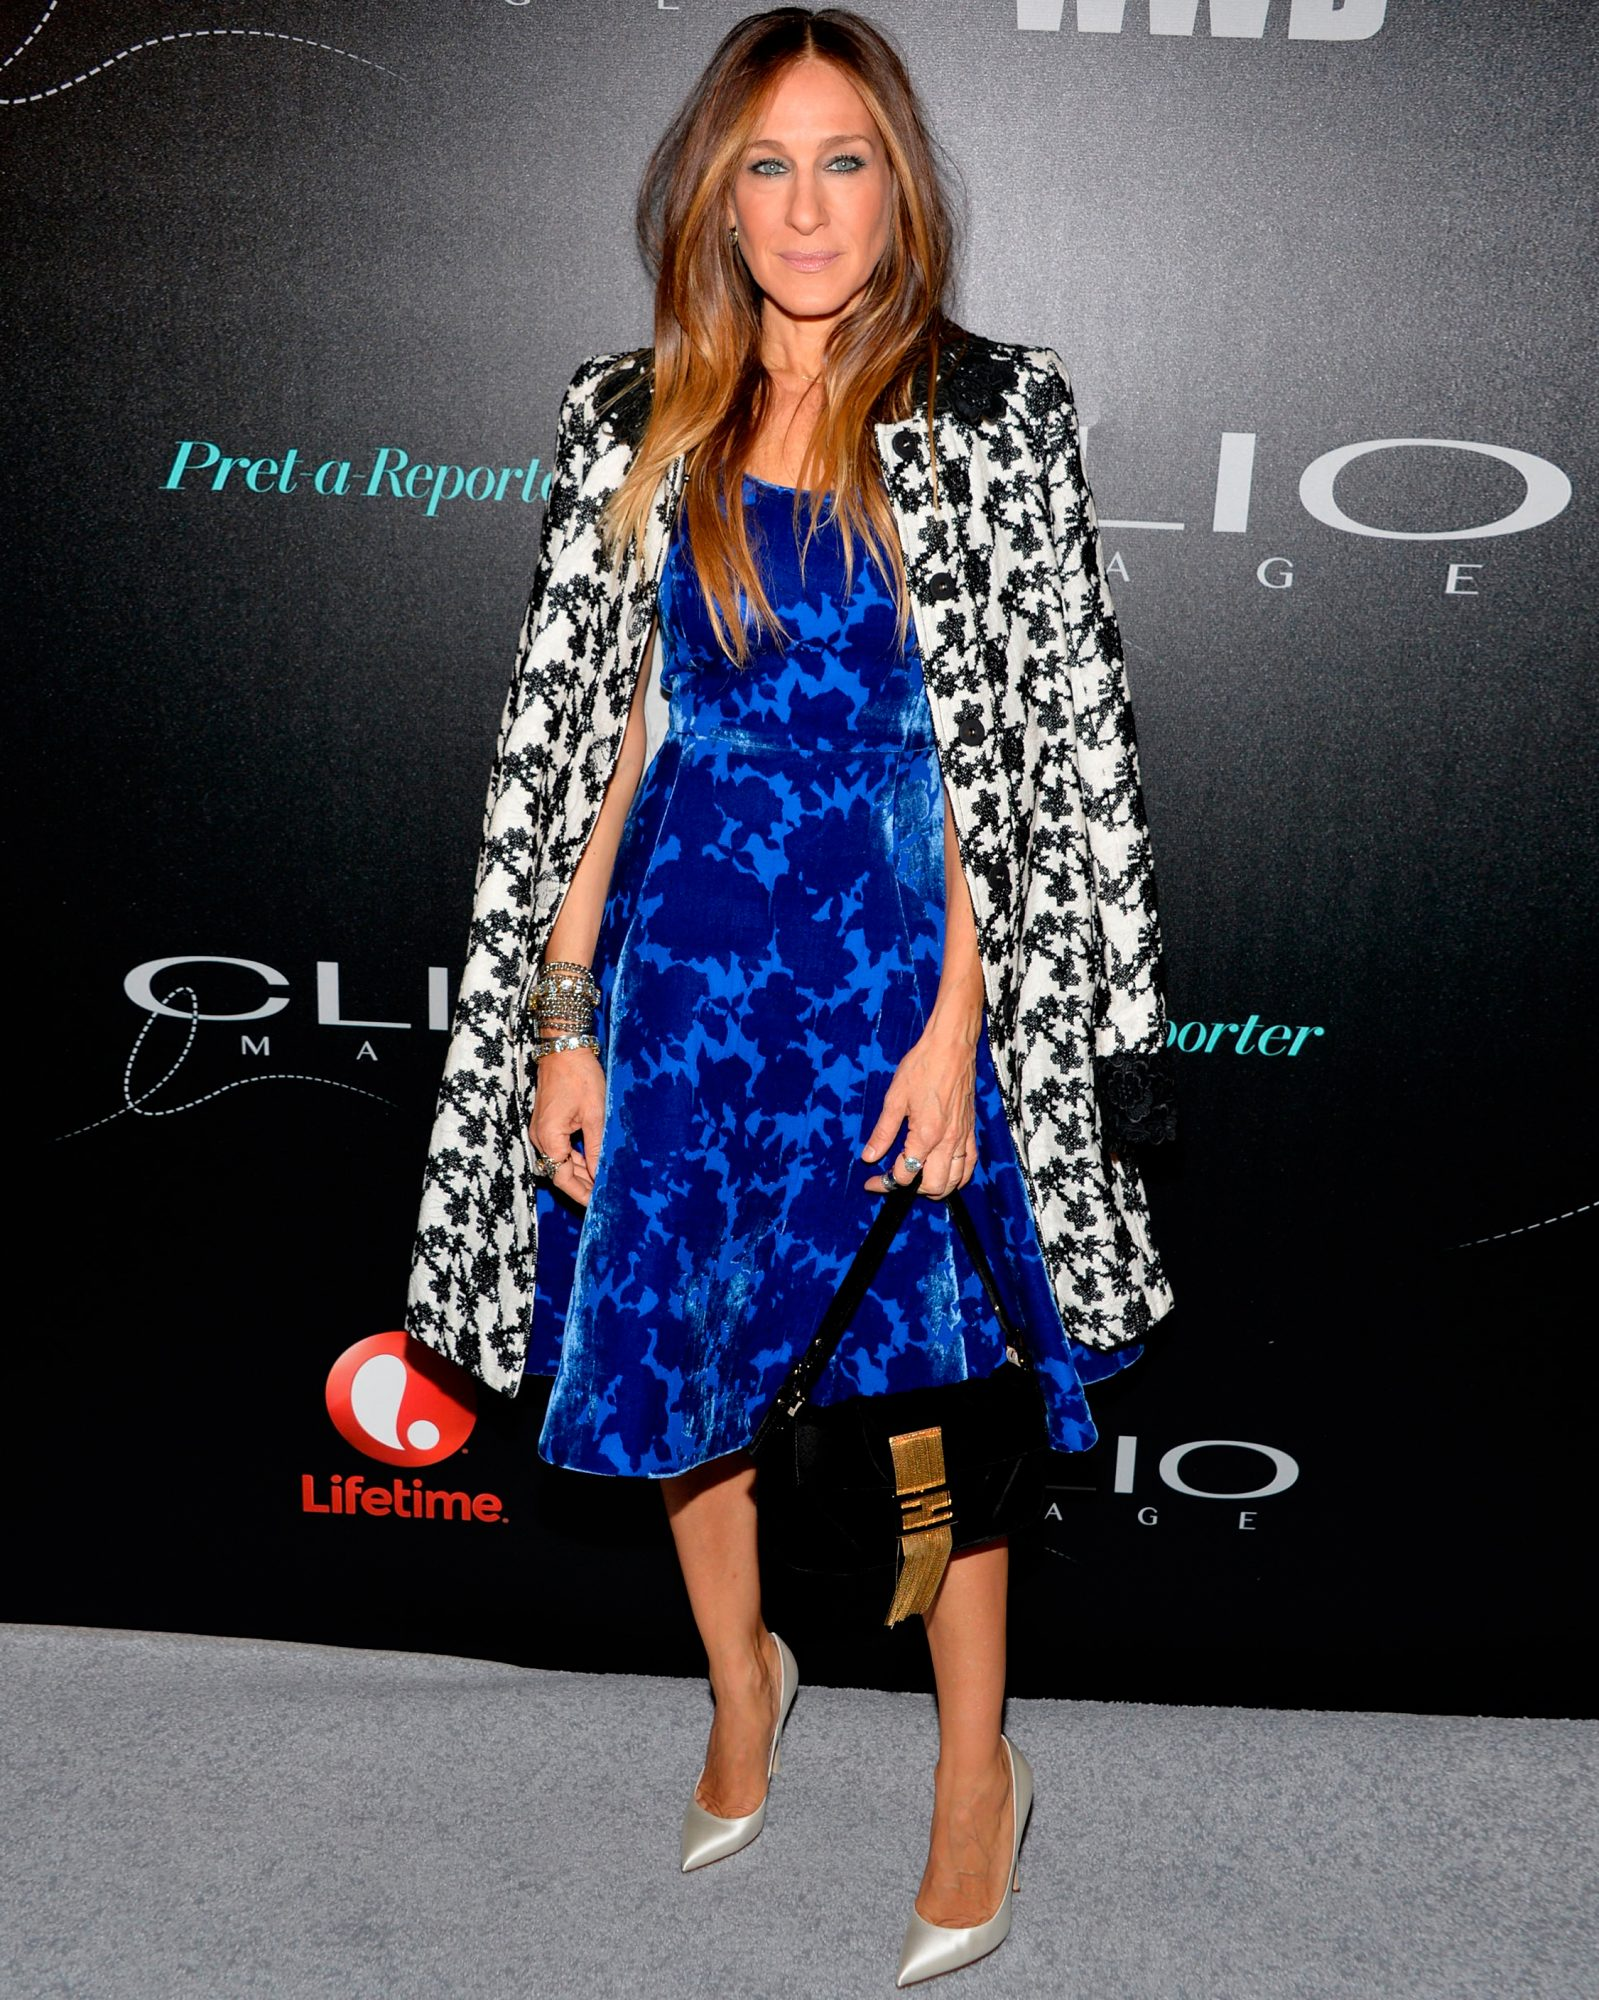 sjp-shoe-roundup-clio-image-awards-0515.jpg